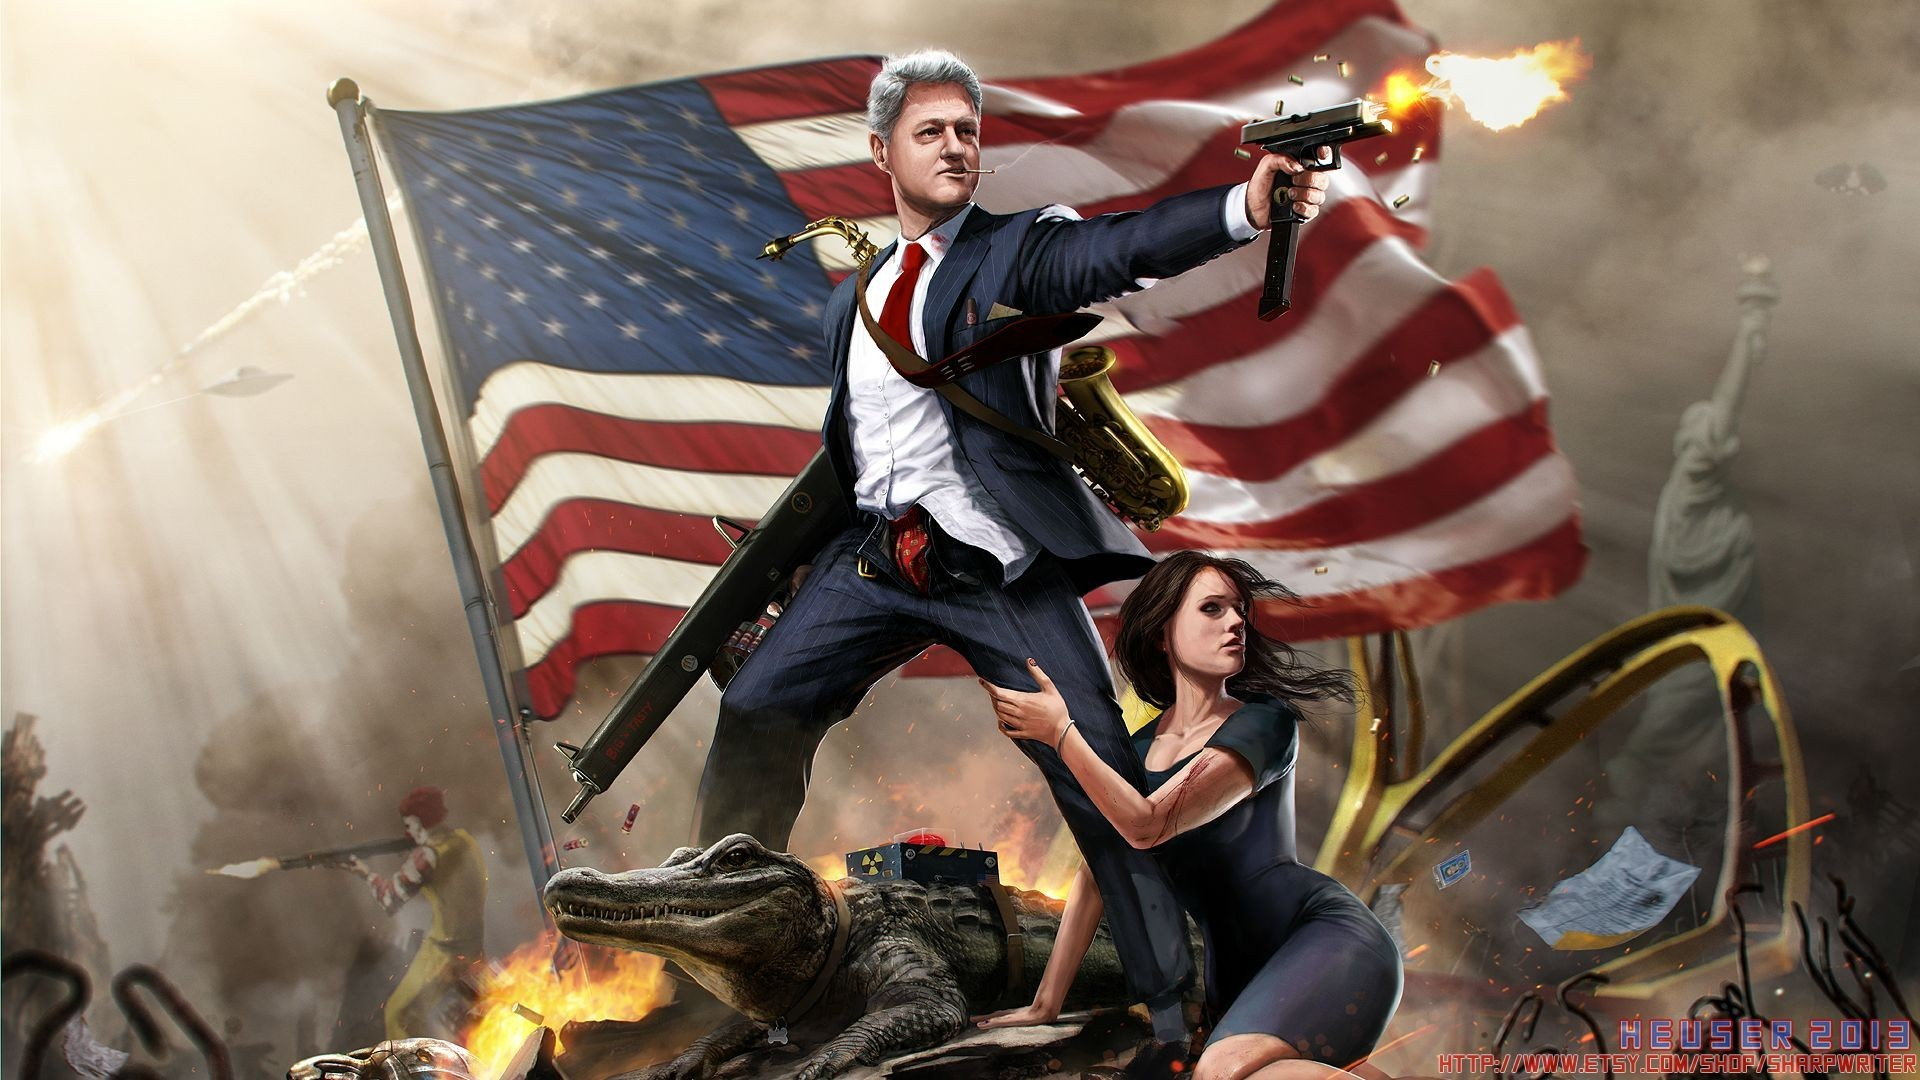 Humor – Politics Artistic Fantasy Bill Clinton President American Flag  Wallpaper